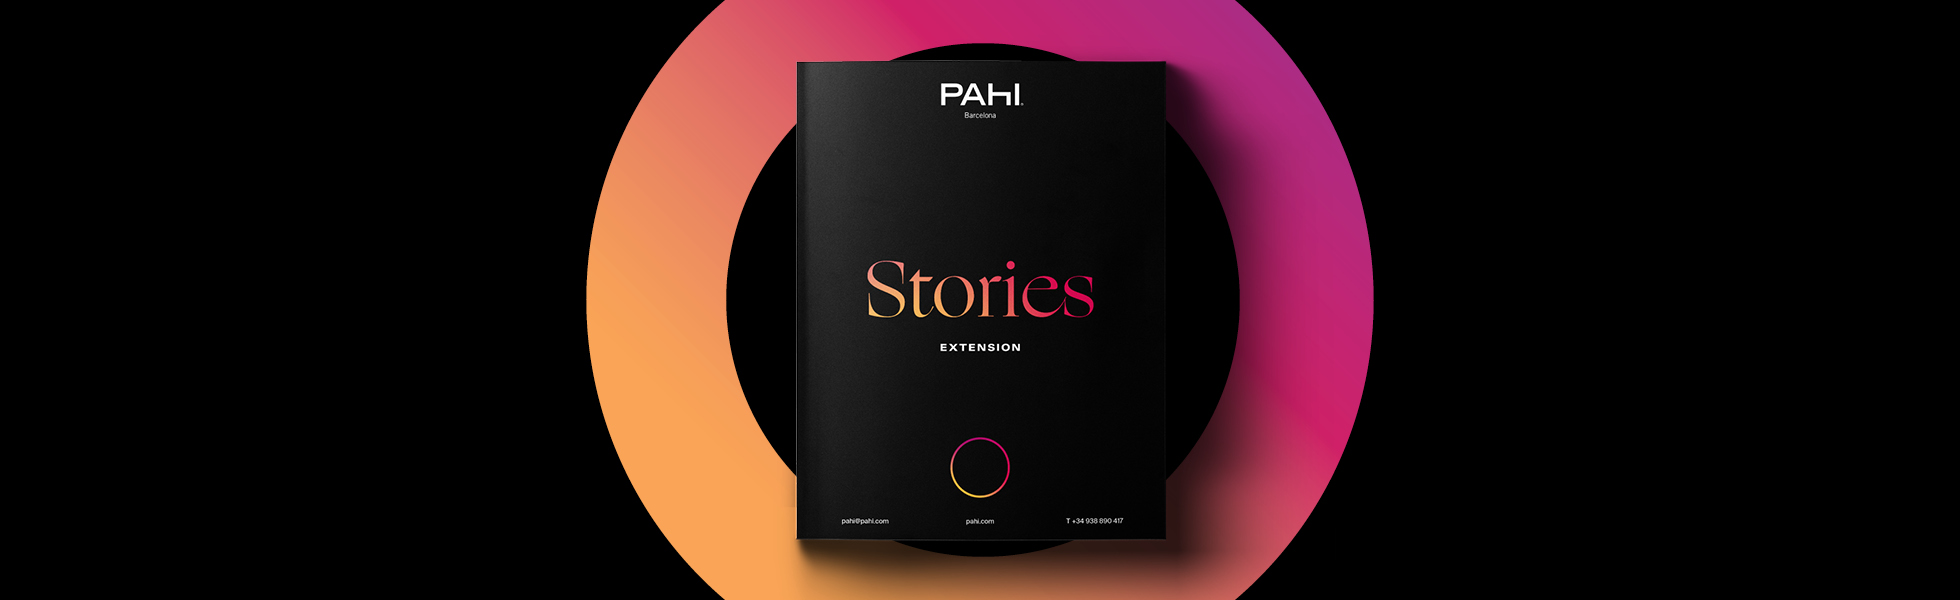 Browse PAHI's products